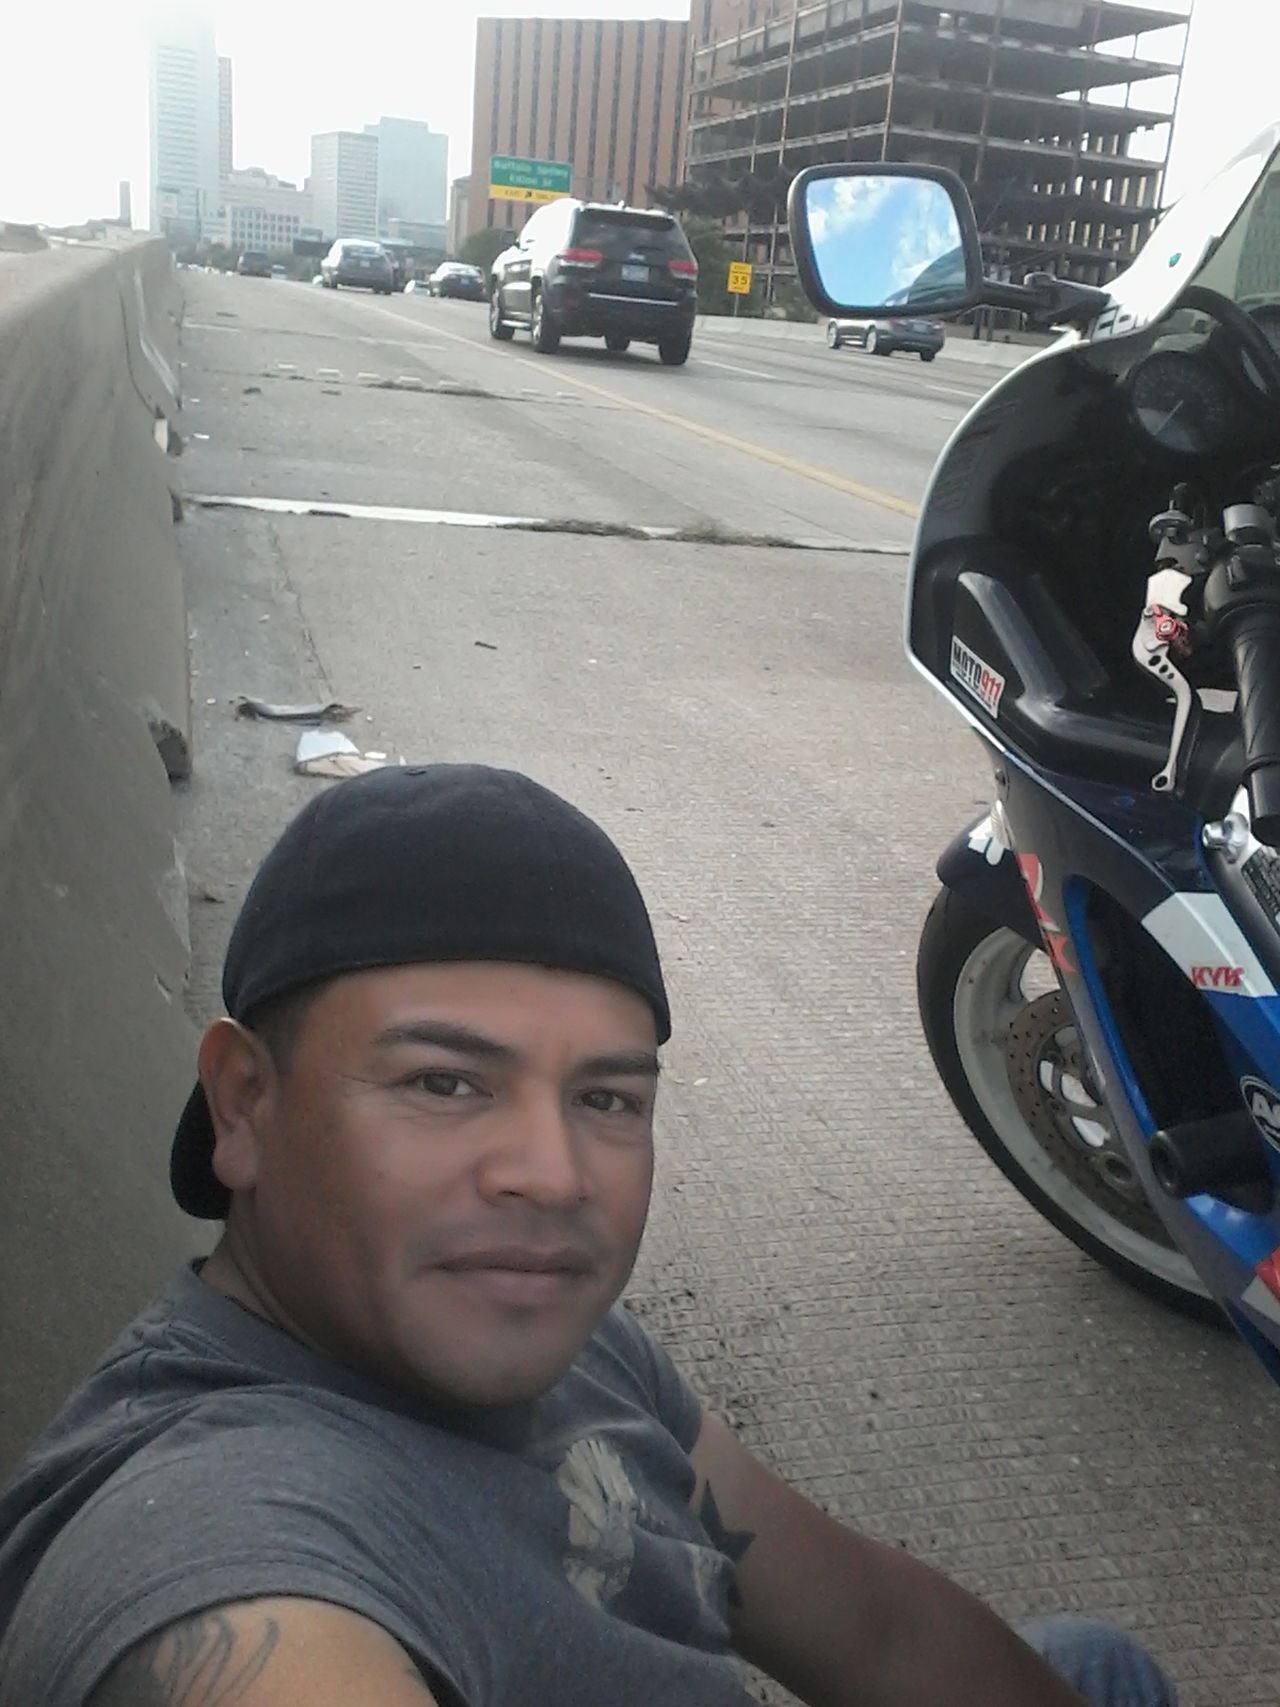 Paseando En Mi Moto Y Se Me Dano Y Yo Aqui Esperando Ayuda Riding My Bike :) Bike Troubles Waiting For Help